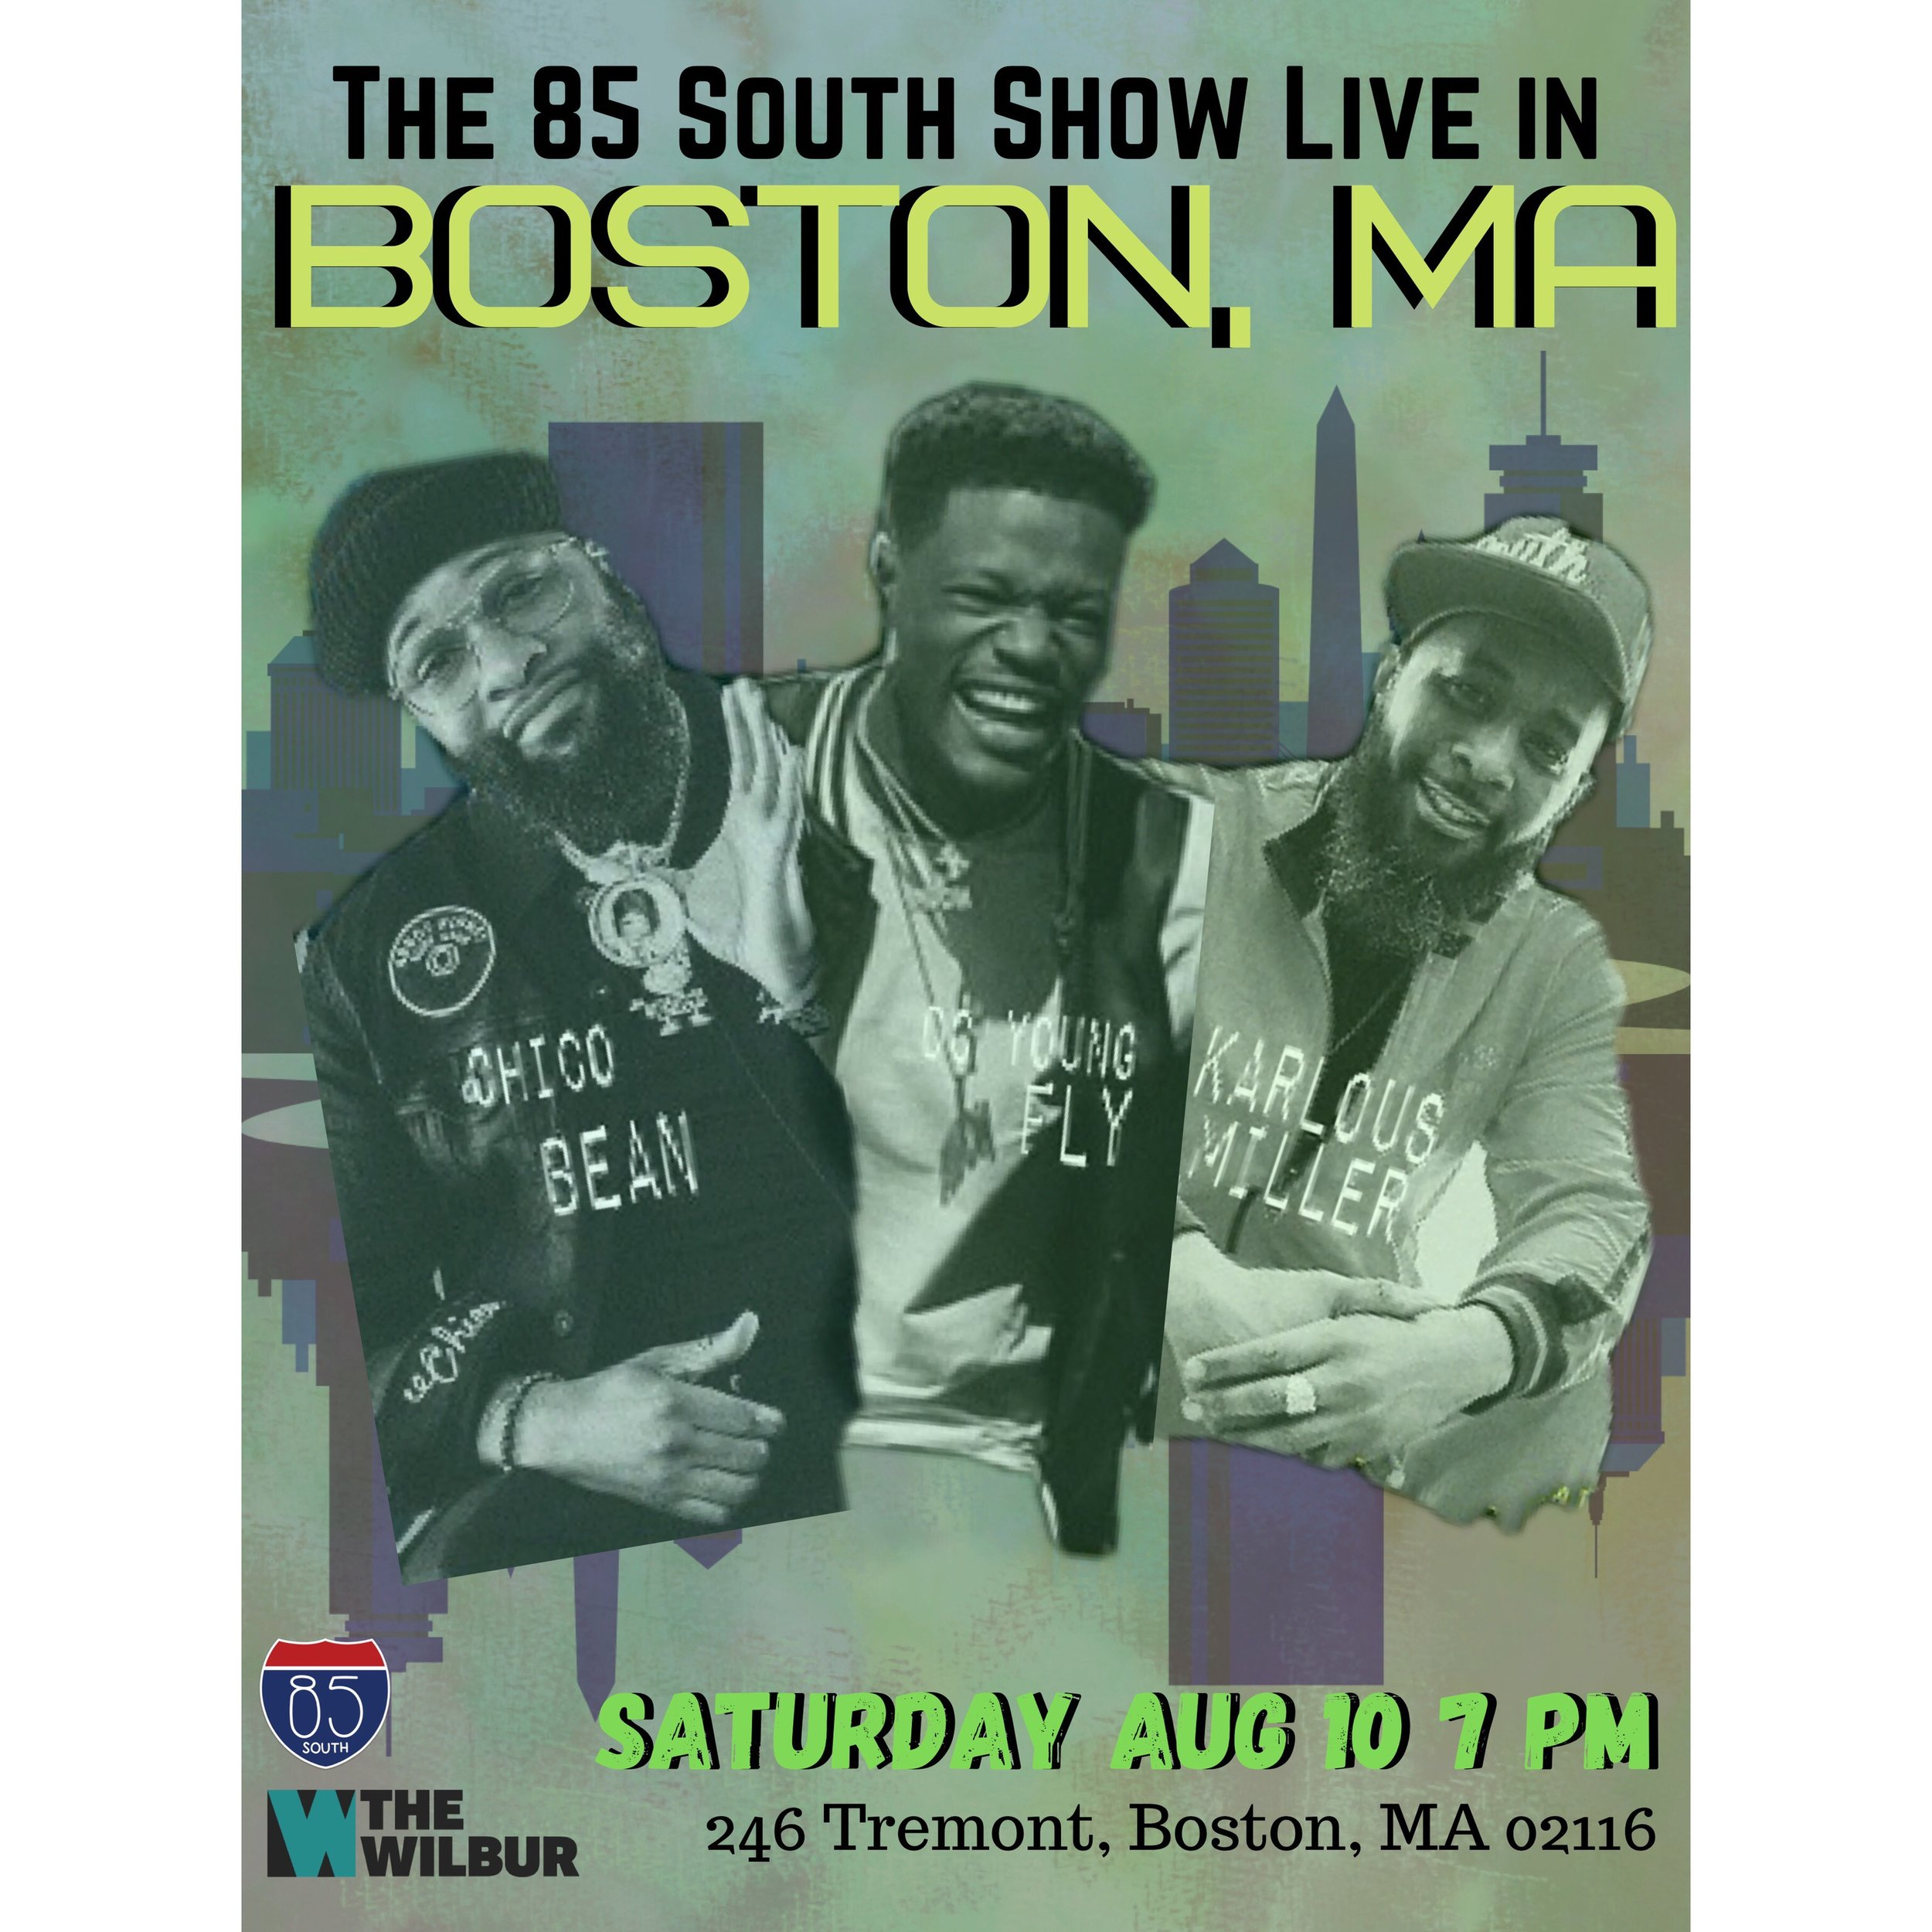 Coming to a city near you ...  🎟️🎟️🎟️*85 South Show Live 2019 Dates*🎟️🎟️🎟️     8.9 - Mashantucket, CT 8.10 - Boston, MA *2nd Show Almost Sold-Out! *  8.17 - Tampa, FL 8.18 - Orlando, FL  8.23 - San Antonio, TX 8.24 - San Antonio, TX 8.25 - Dallas, TX                                                                                                                                   8.30 - Shreveport, LA  9.31 - Little Rock, AR                                                                                                                            9.1 Birmingham, AL